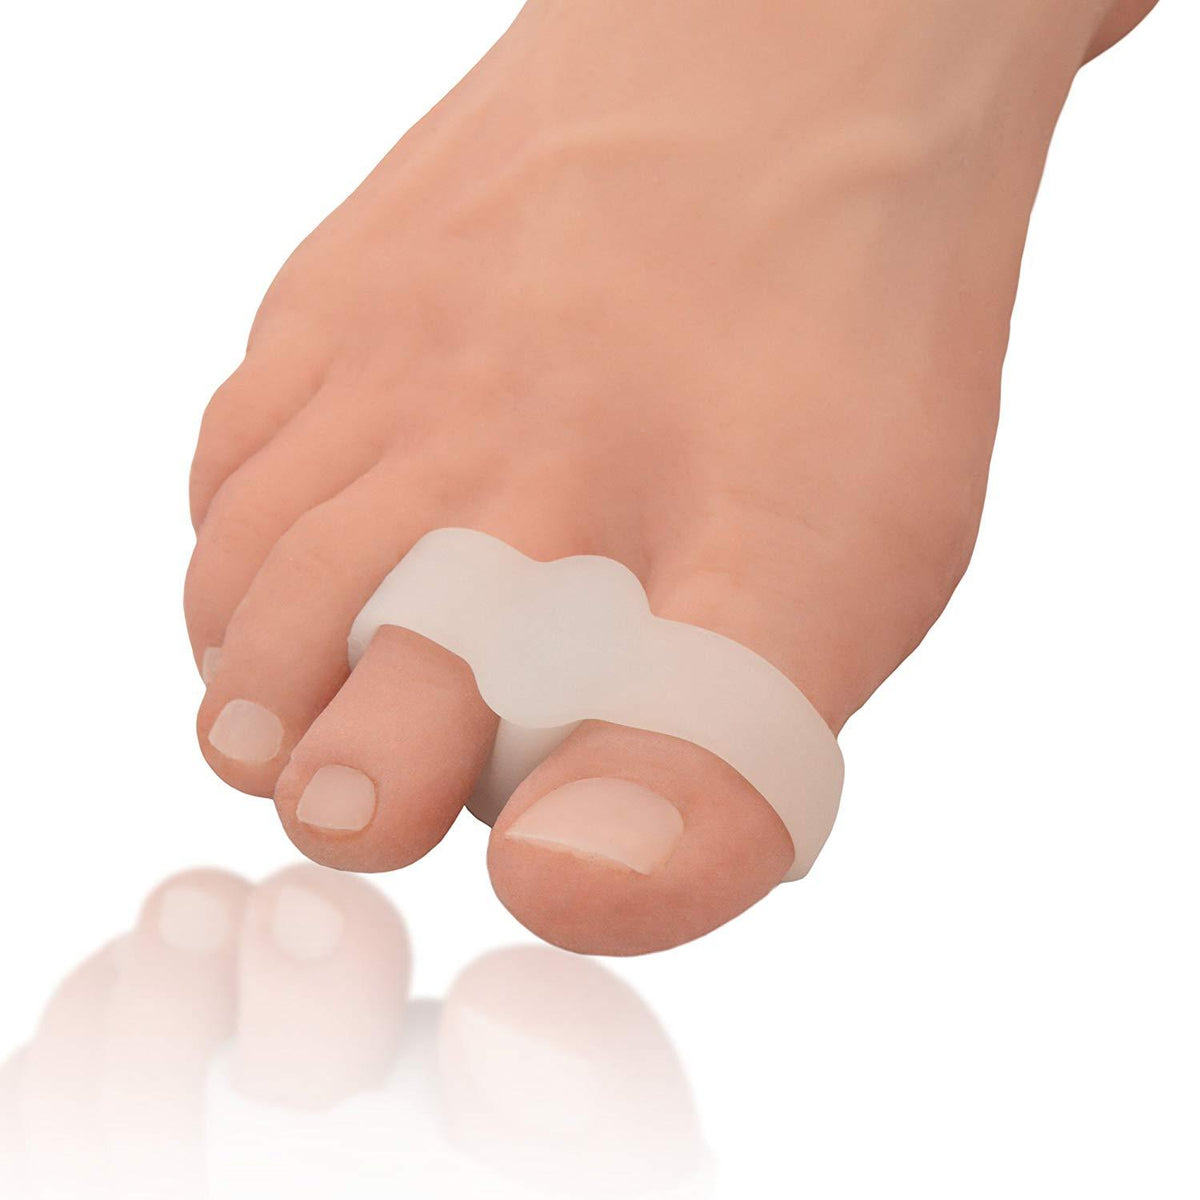 Dr. Frederick's Original Sport Bunion Toe Spacer Set -- 2 Pieces - for Active People with Bunions Foot Pain Dr. Frederick's Original